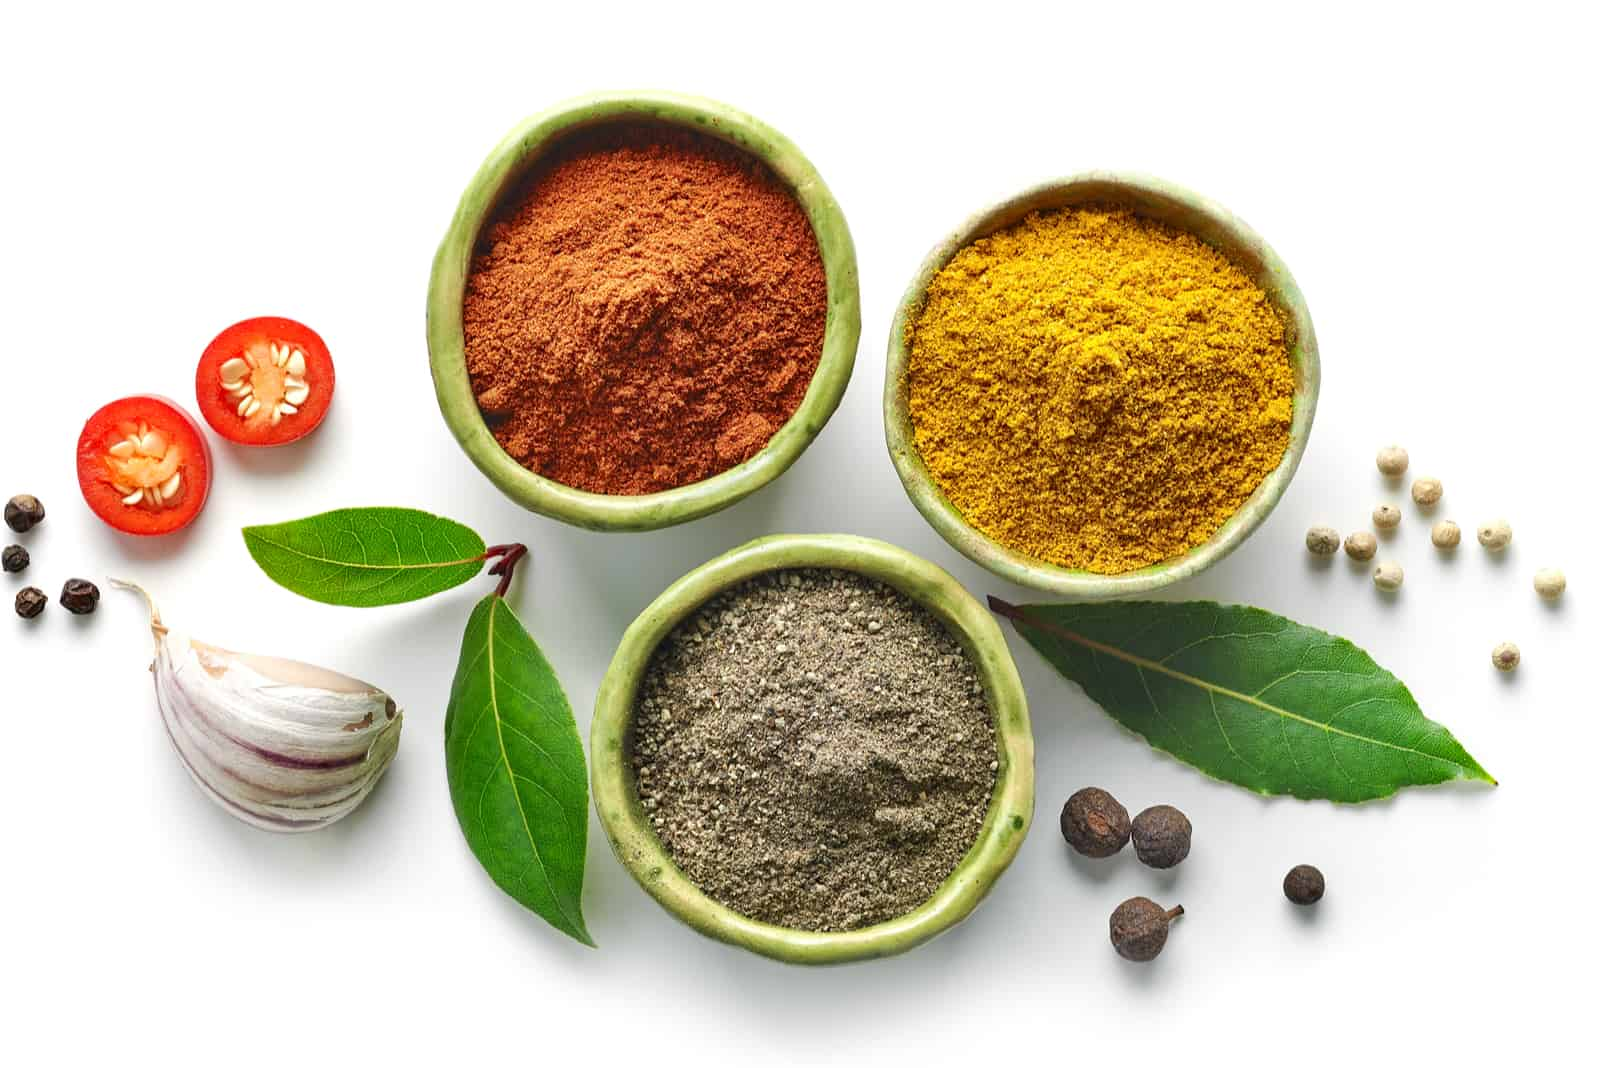 powdered spices in bowls